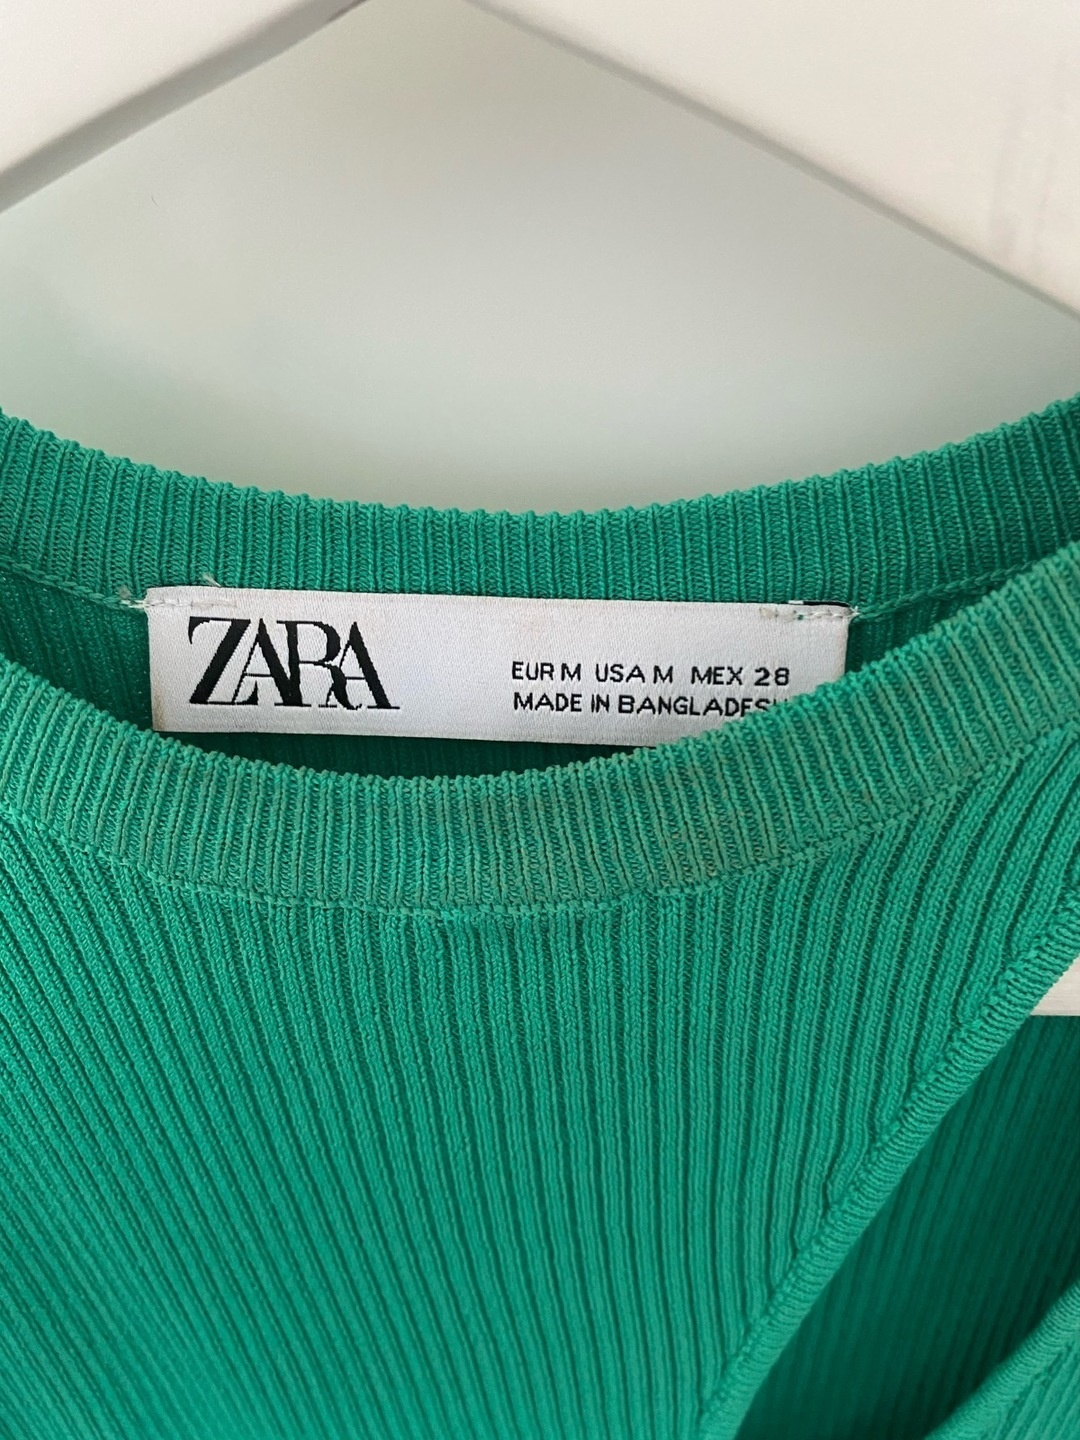 Women's tops & t-shirts - ZARA photo 2